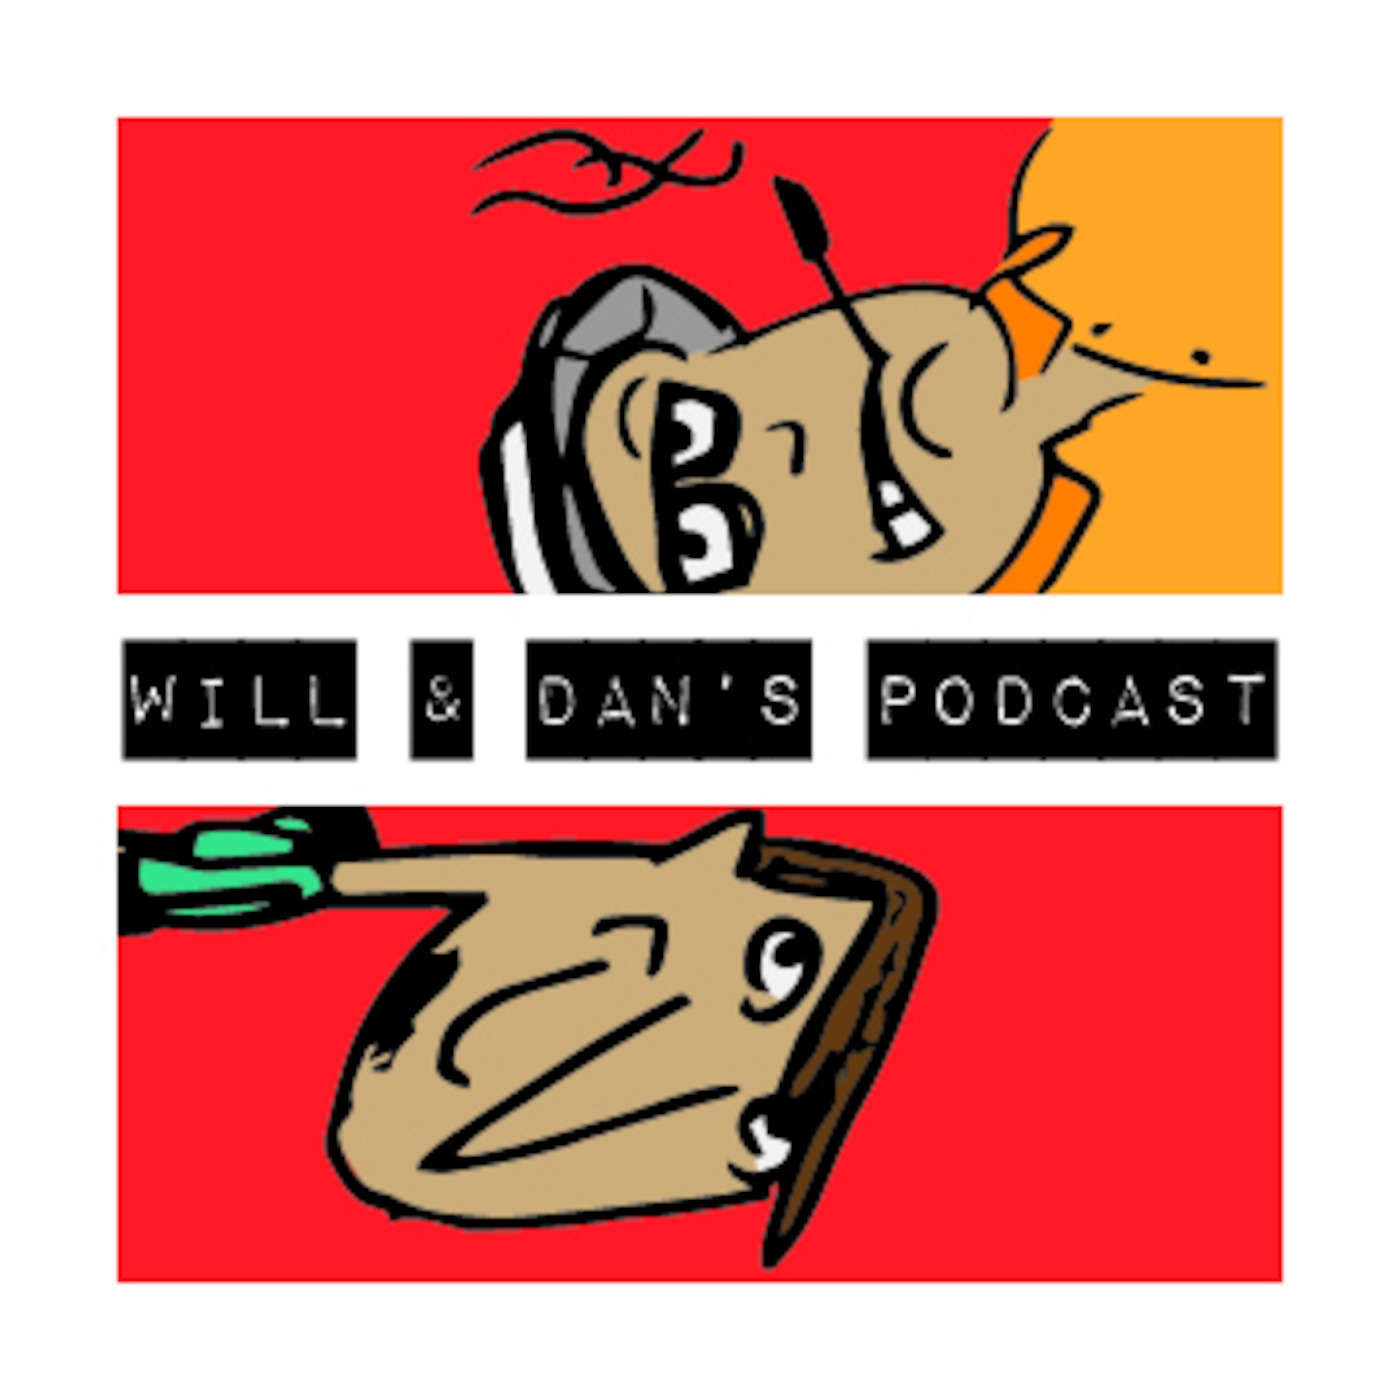 Will and Dan's Podcast